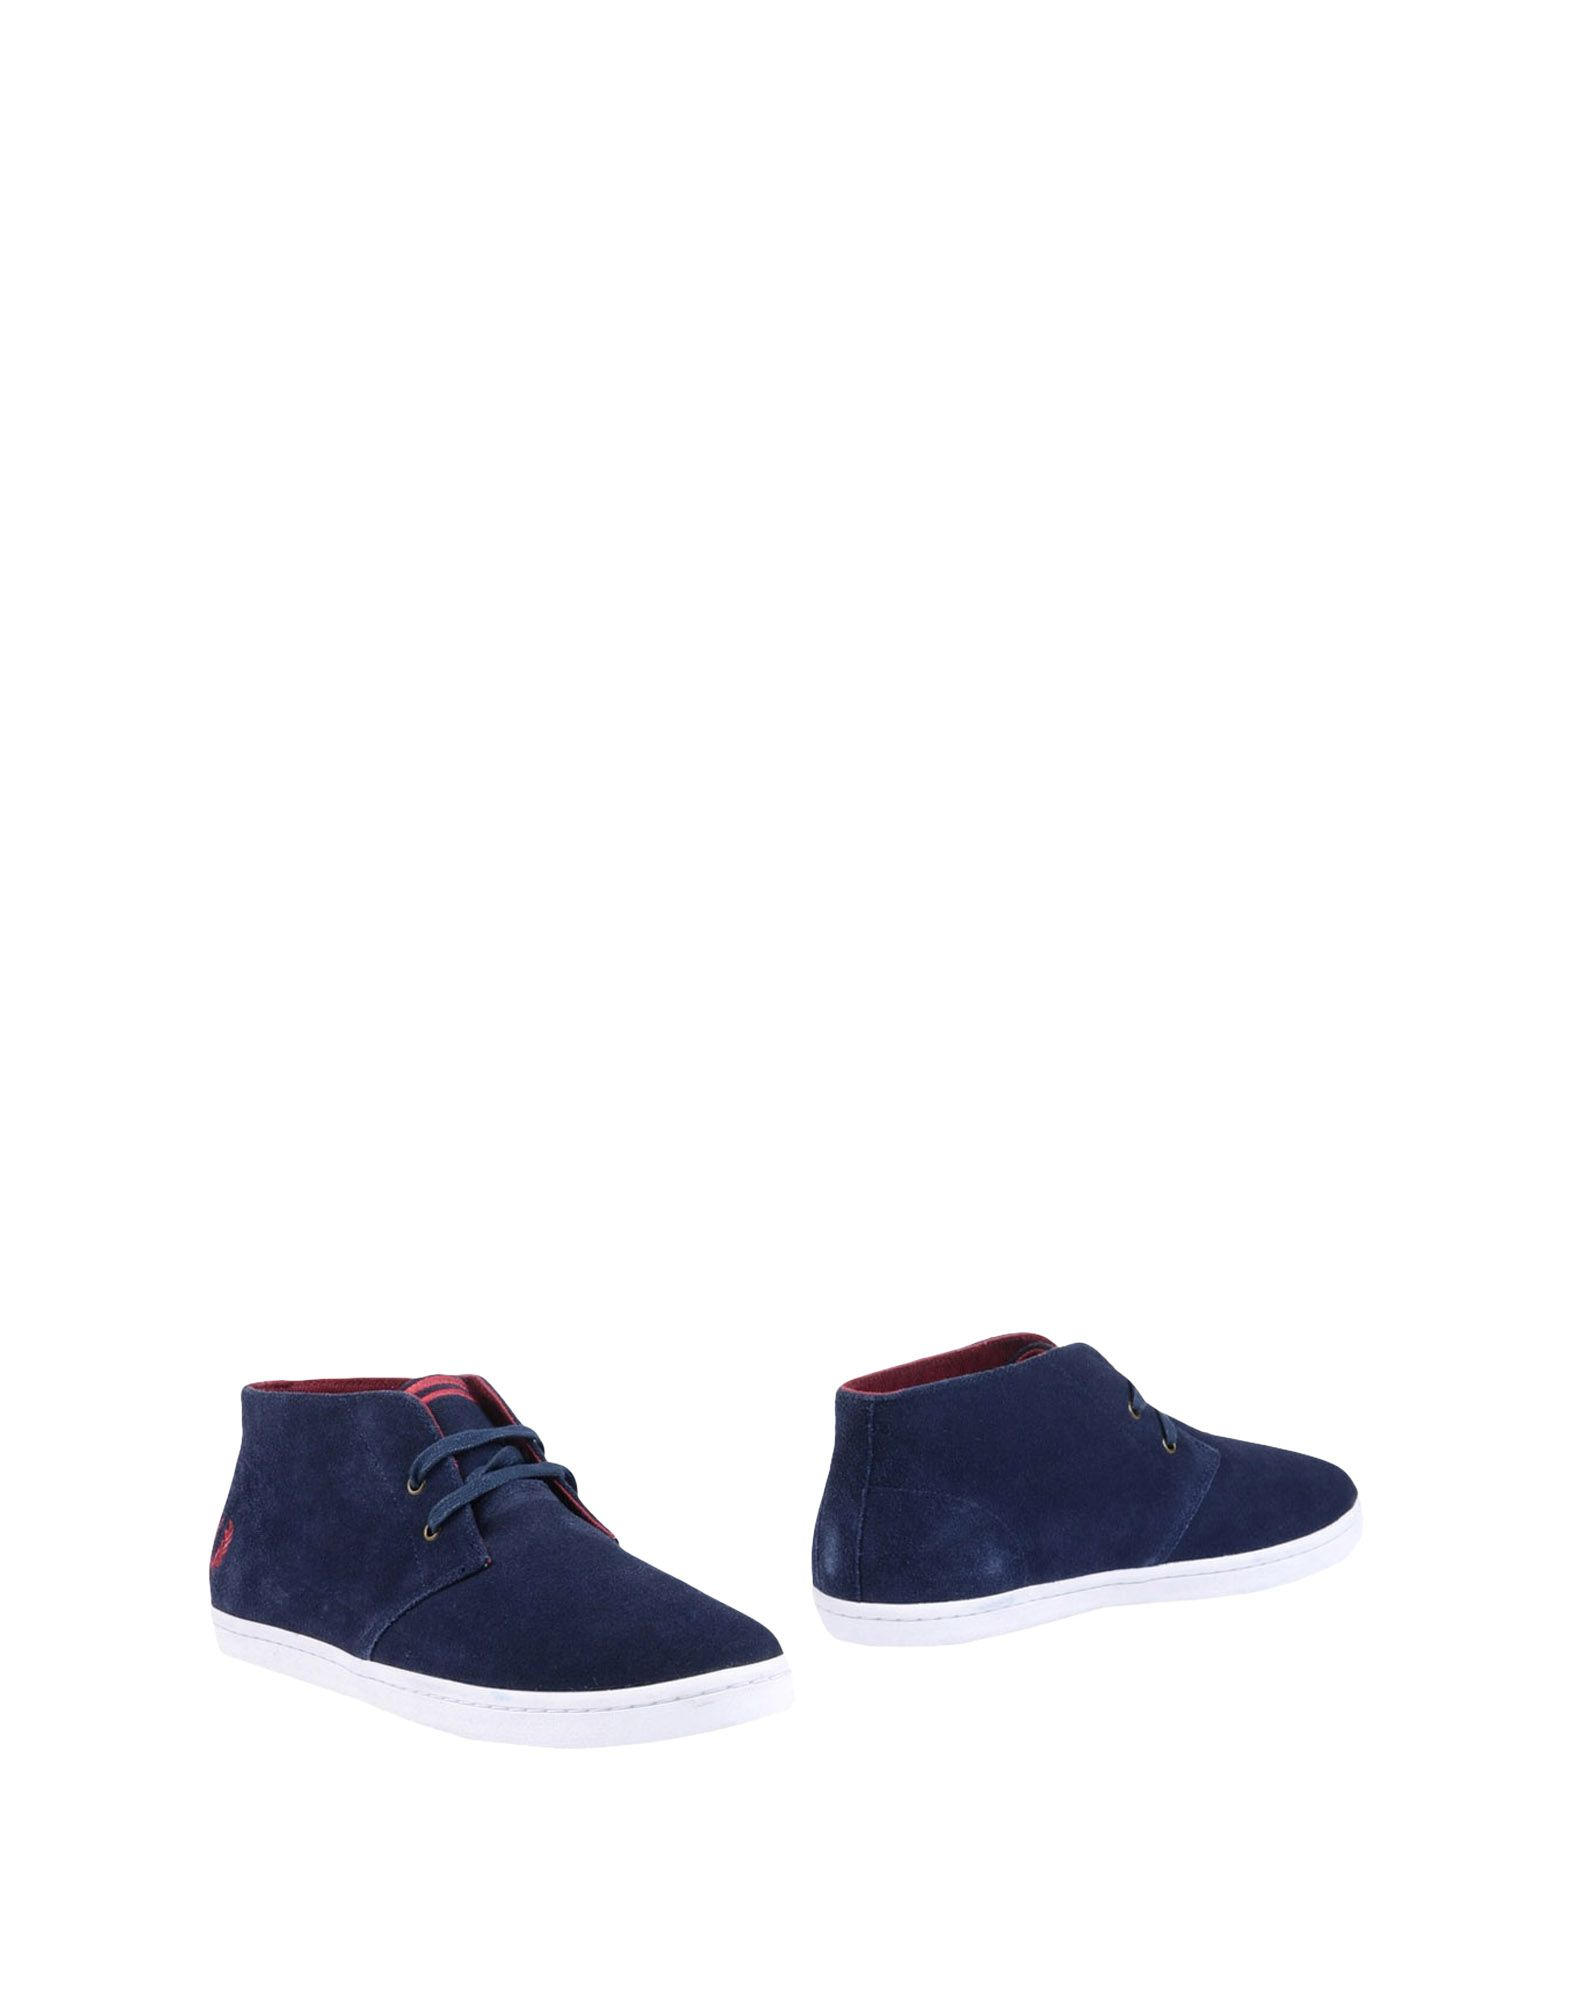 Bottine Fred Perry Homme - Bottines Fred Perry sur